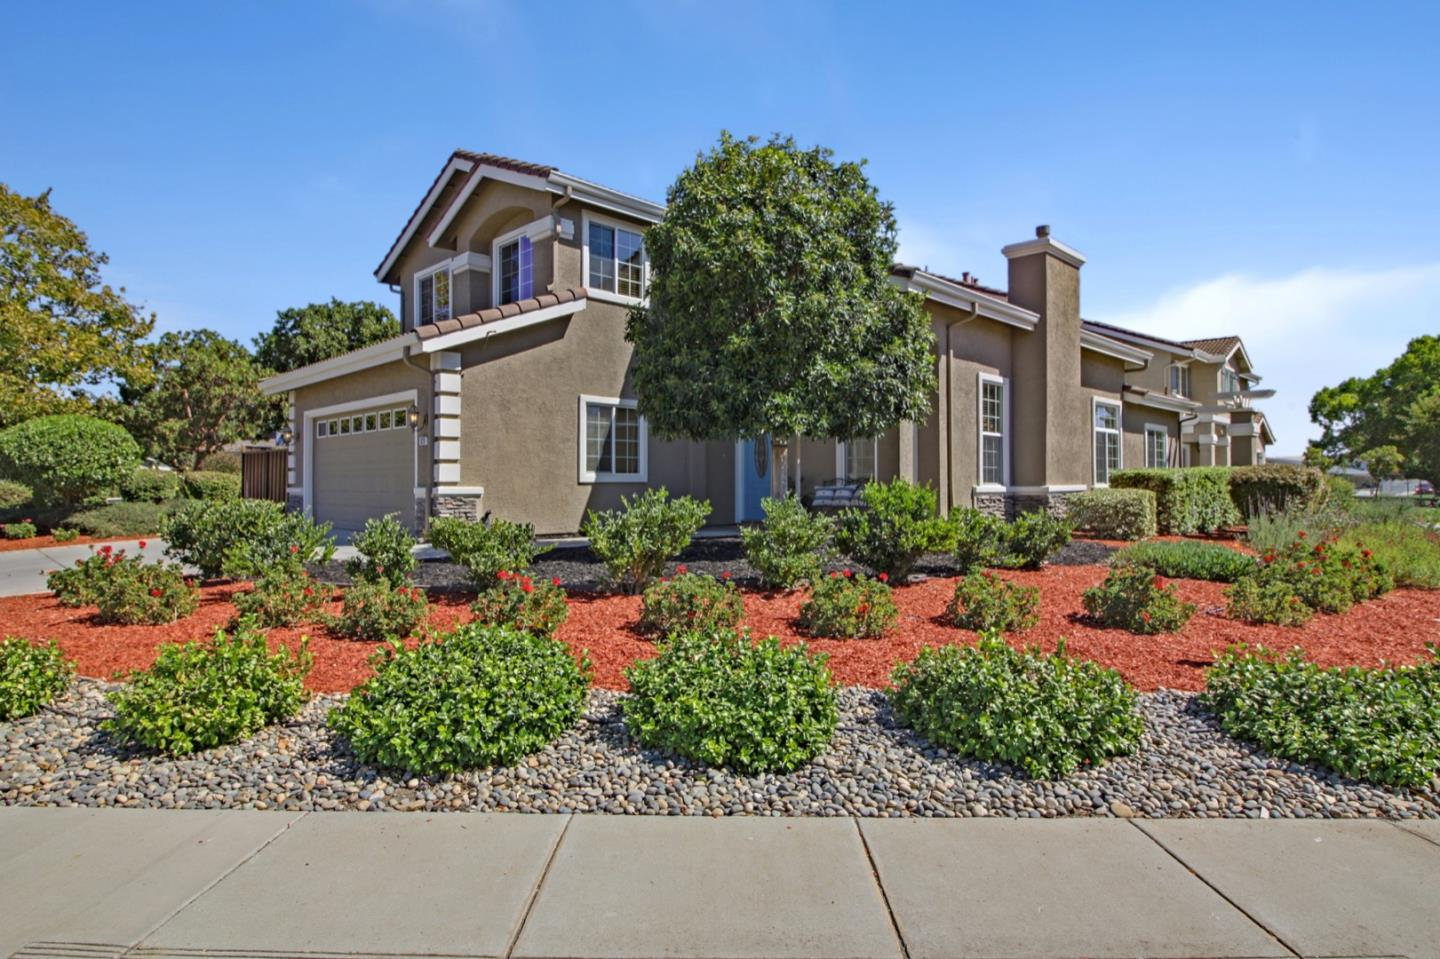 Detail Gallery Image 1 of 45 For 820 San Vicente Ct, Morgan Hill,  CA 95037 - 5 Beds   3/1 Baths